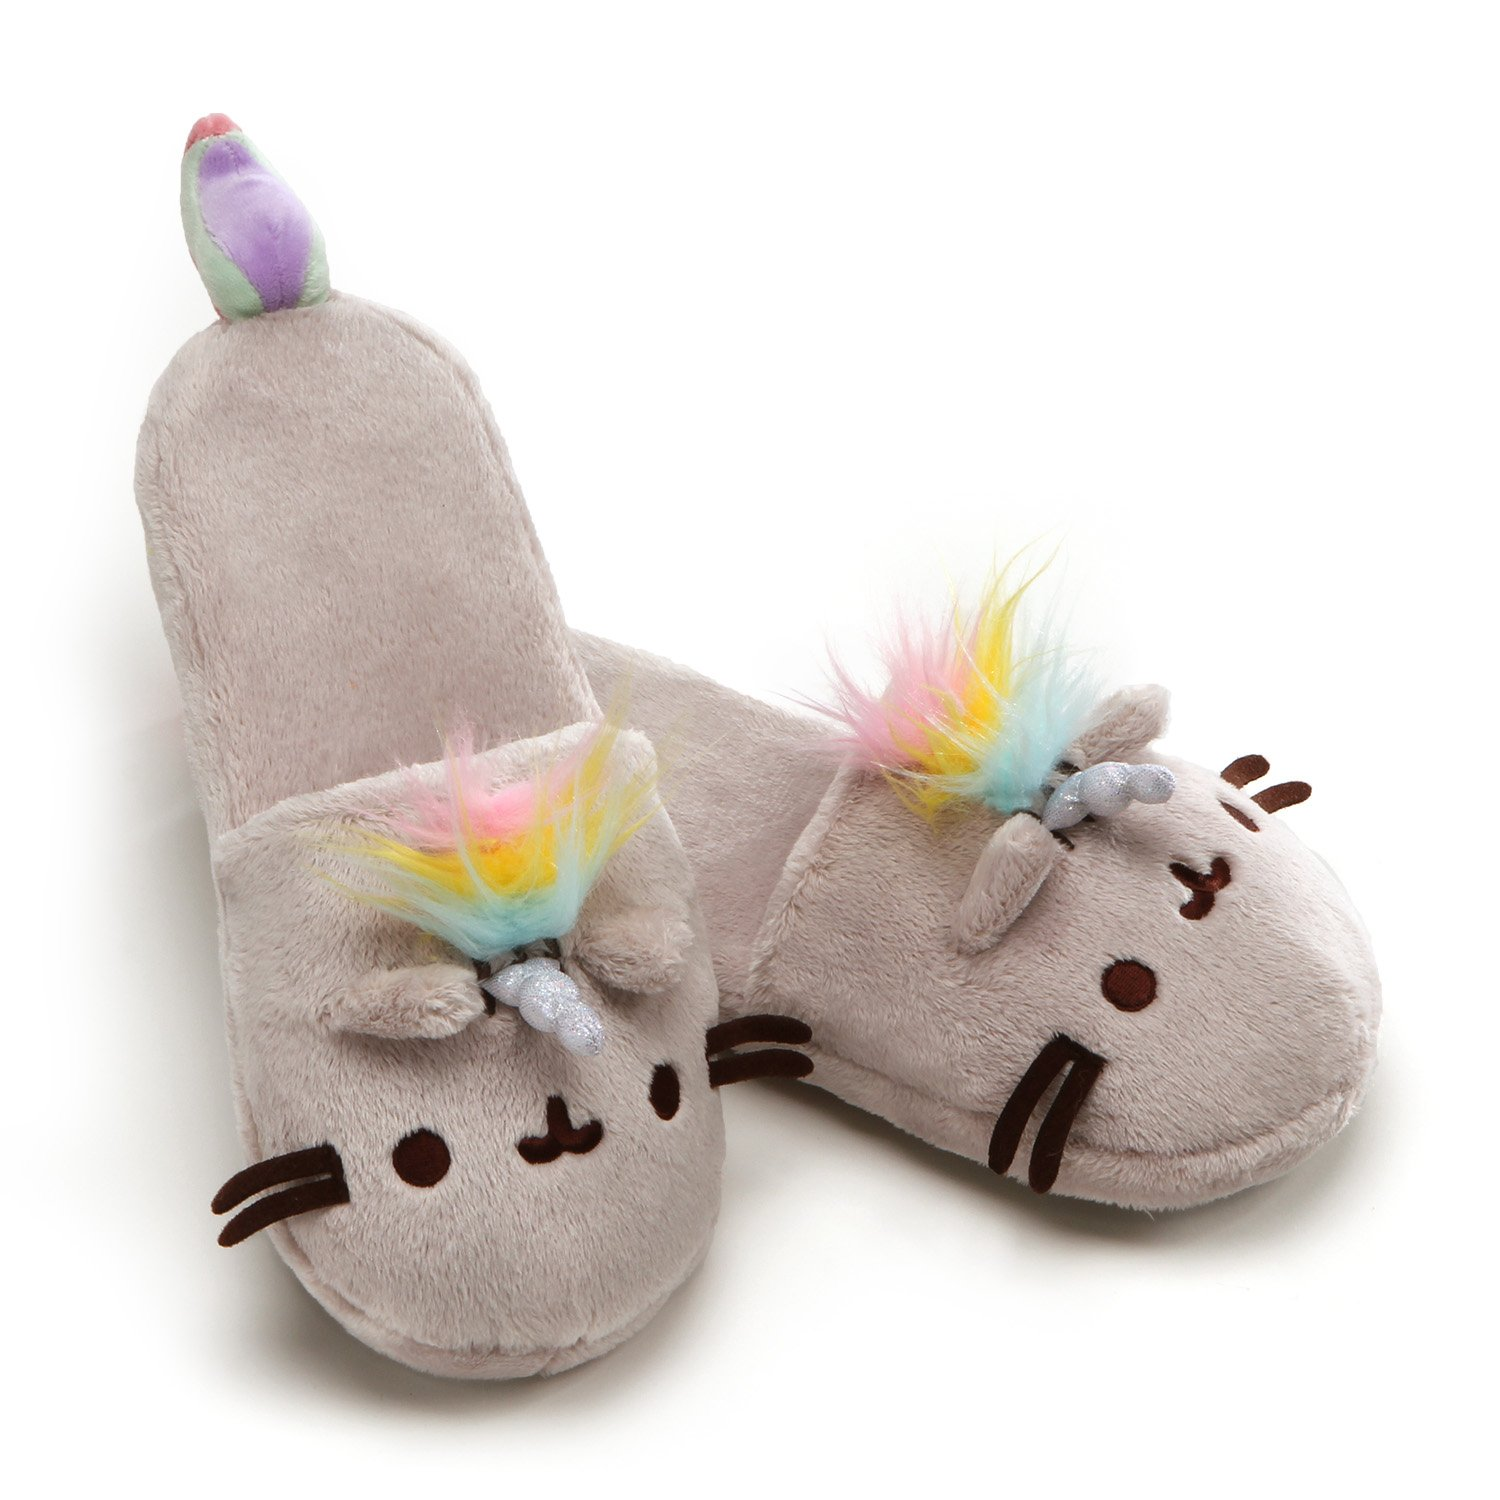 990a5afe82a Amazon.com  GUND Pusheenicorn Pusheen Unicorn Cat Plush Stuffed Animal  Slippers